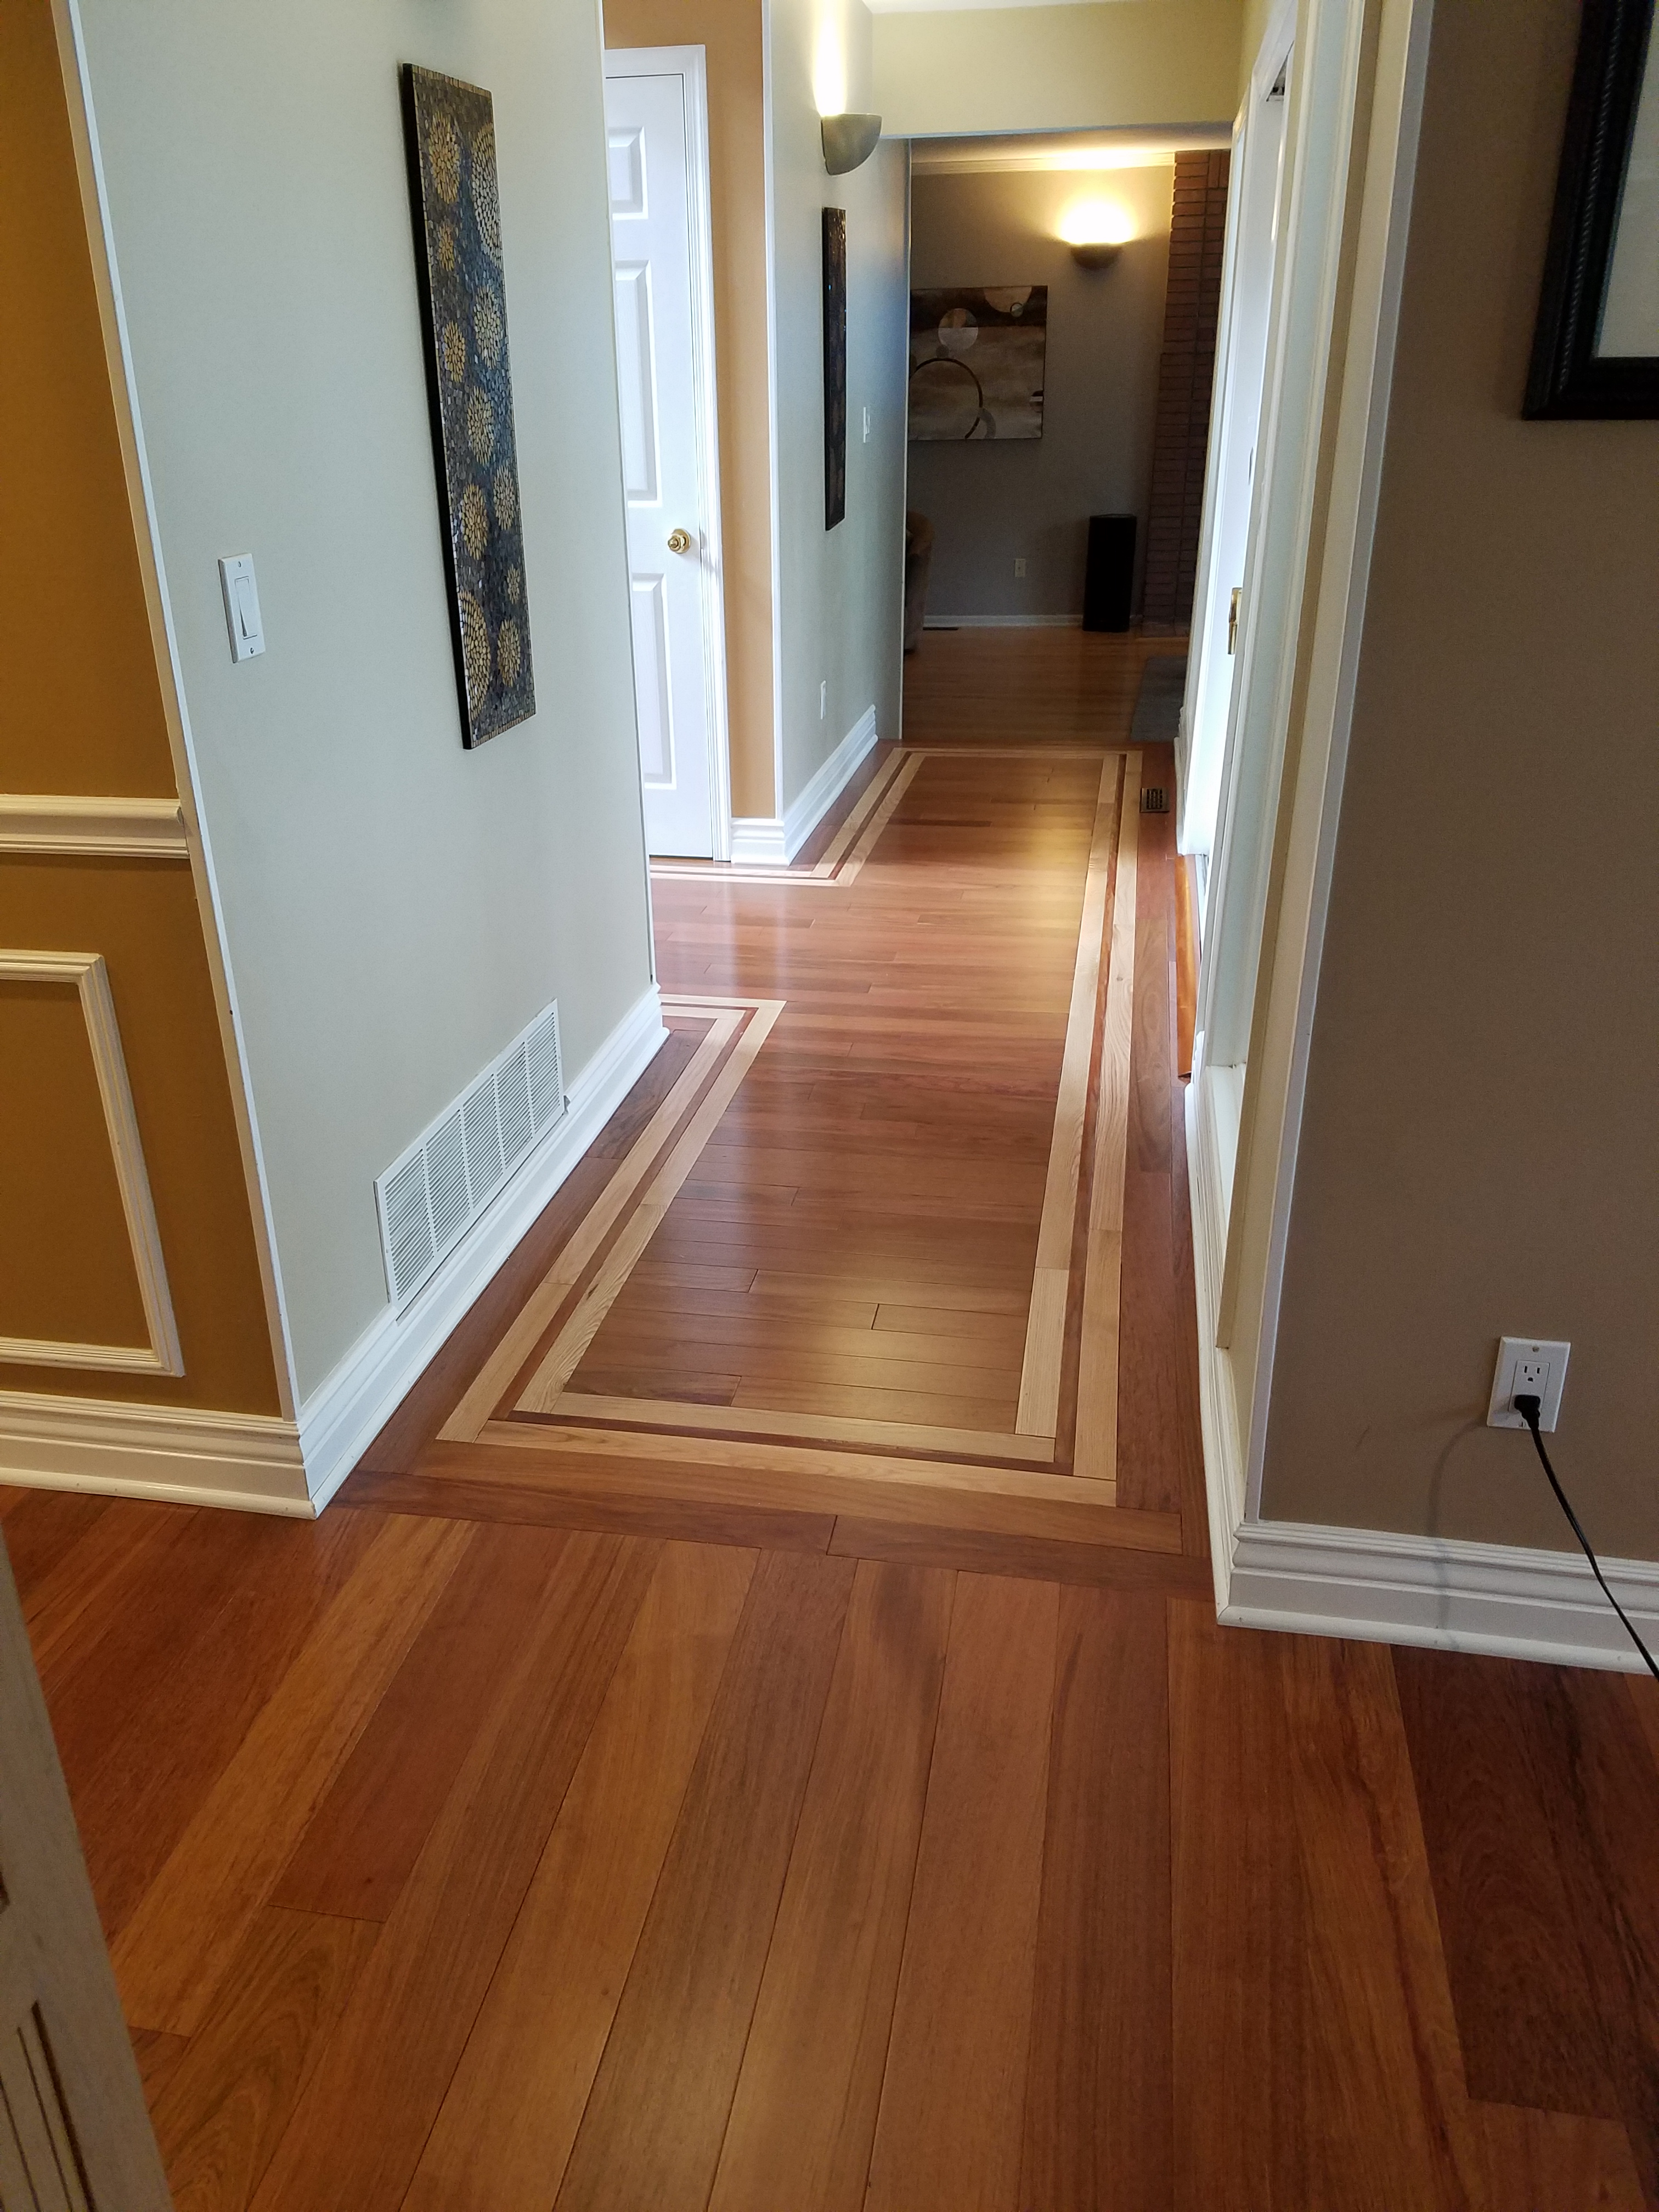 Difference Between Hardwood And Laminate Flooring Part - 46: Beautiful Ssj Hardwood Flooring Llc U Design Your Dream Floors With The  Main Difference Between Hardwood And Laminate Flooring Is.